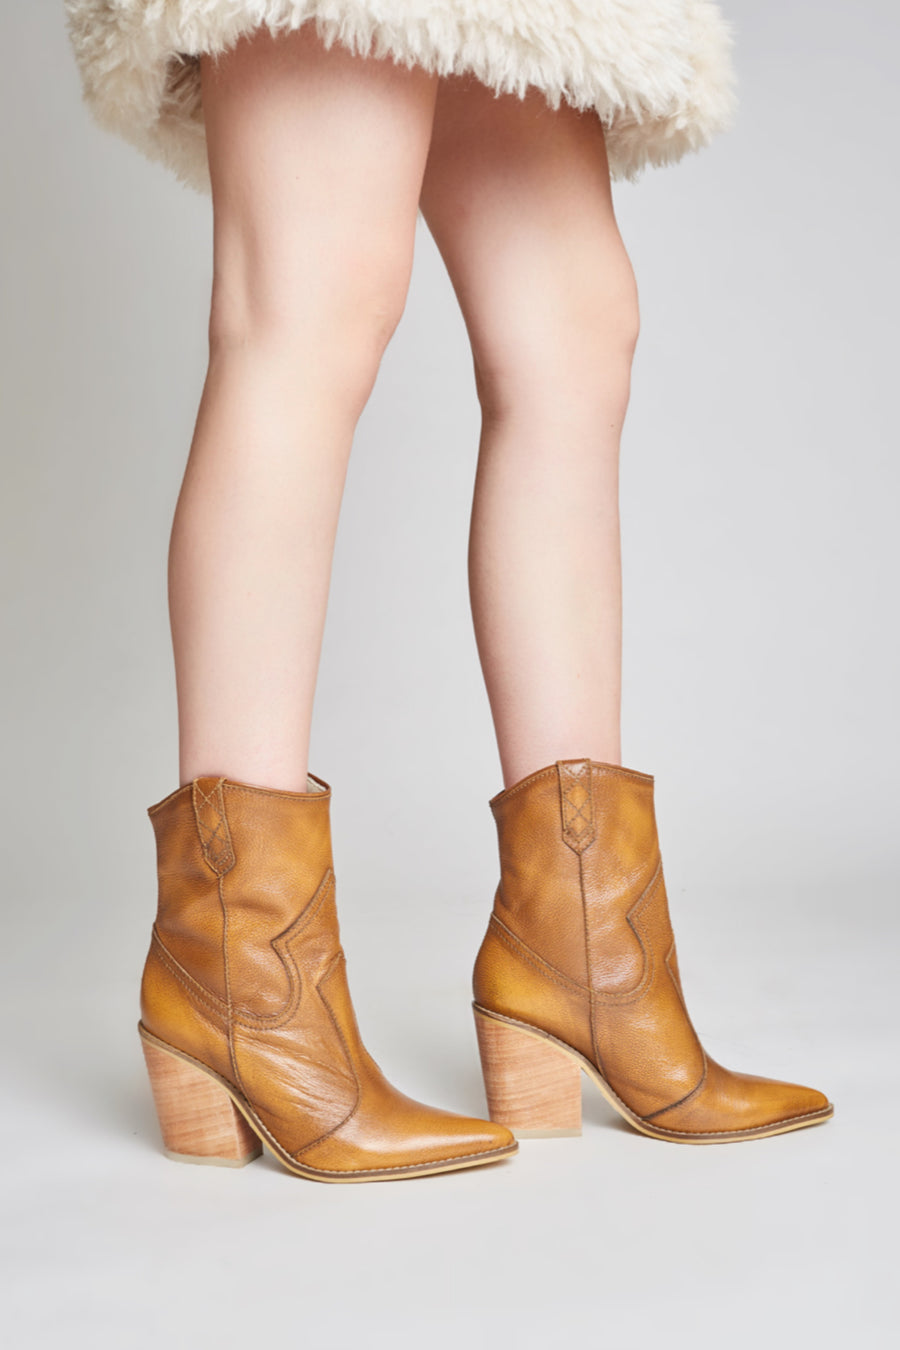 Strength wester booties in tan brush-off leather